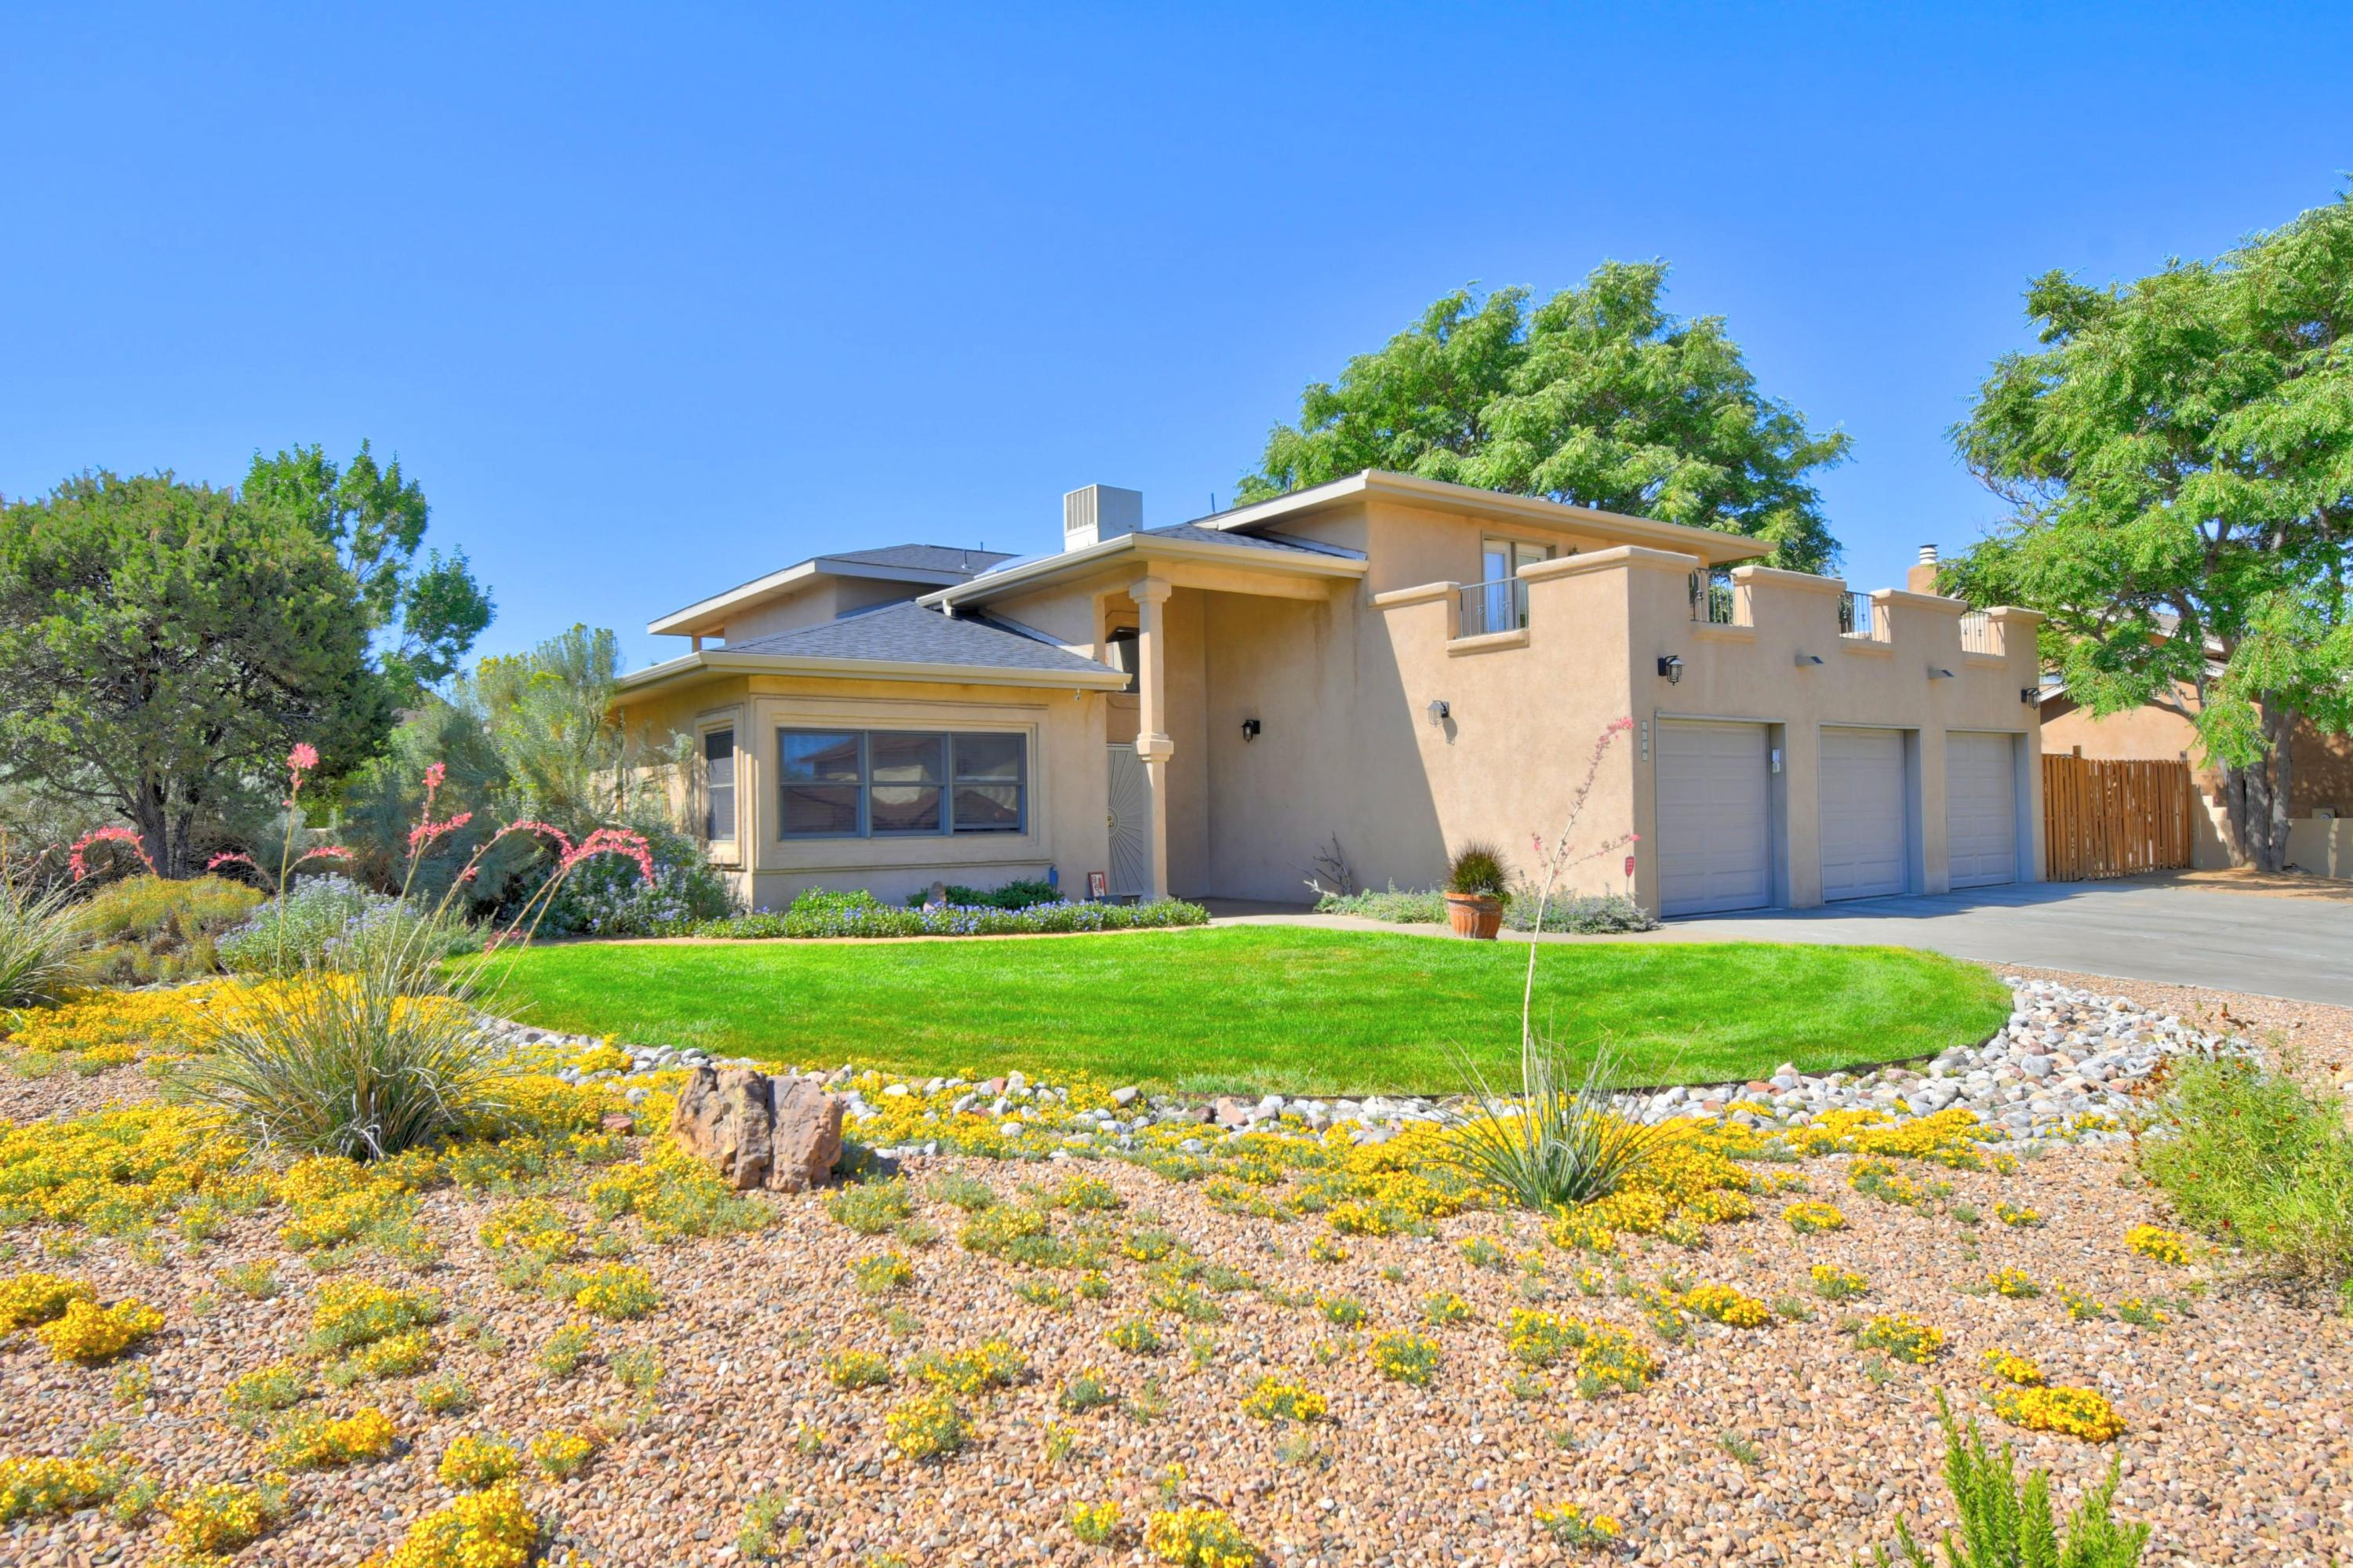 9626 VILLA DEL REY NE Property Photo - Albuquerque, NM real estate listing